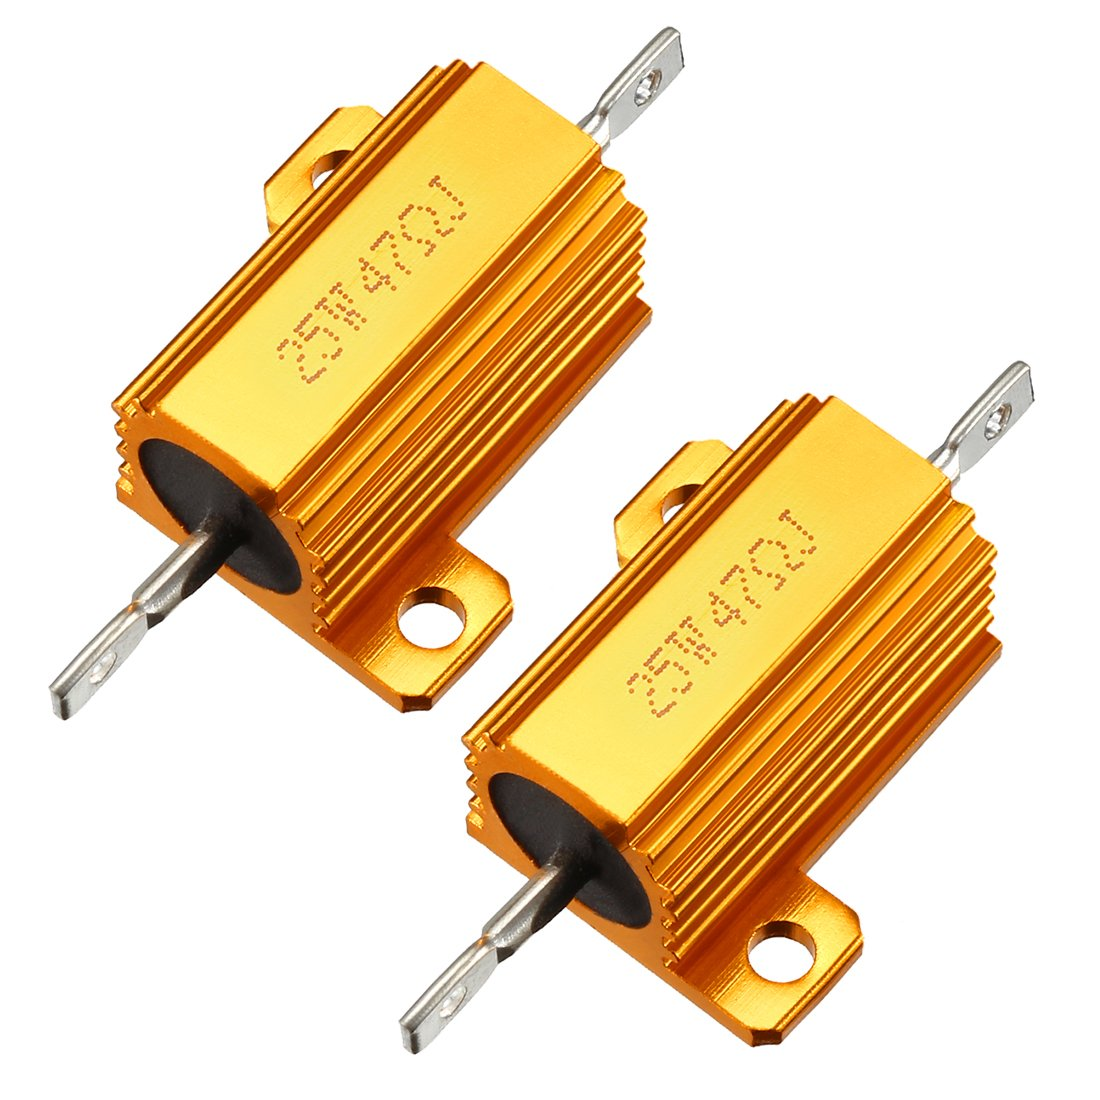 uxcell 25W 47 Ohm 5/% Aluminum Housing Resistor Screw Tap Chassis Mounted Aluminum Case Wirewound Resistor Load Resistors Gold Tone 2 pcs